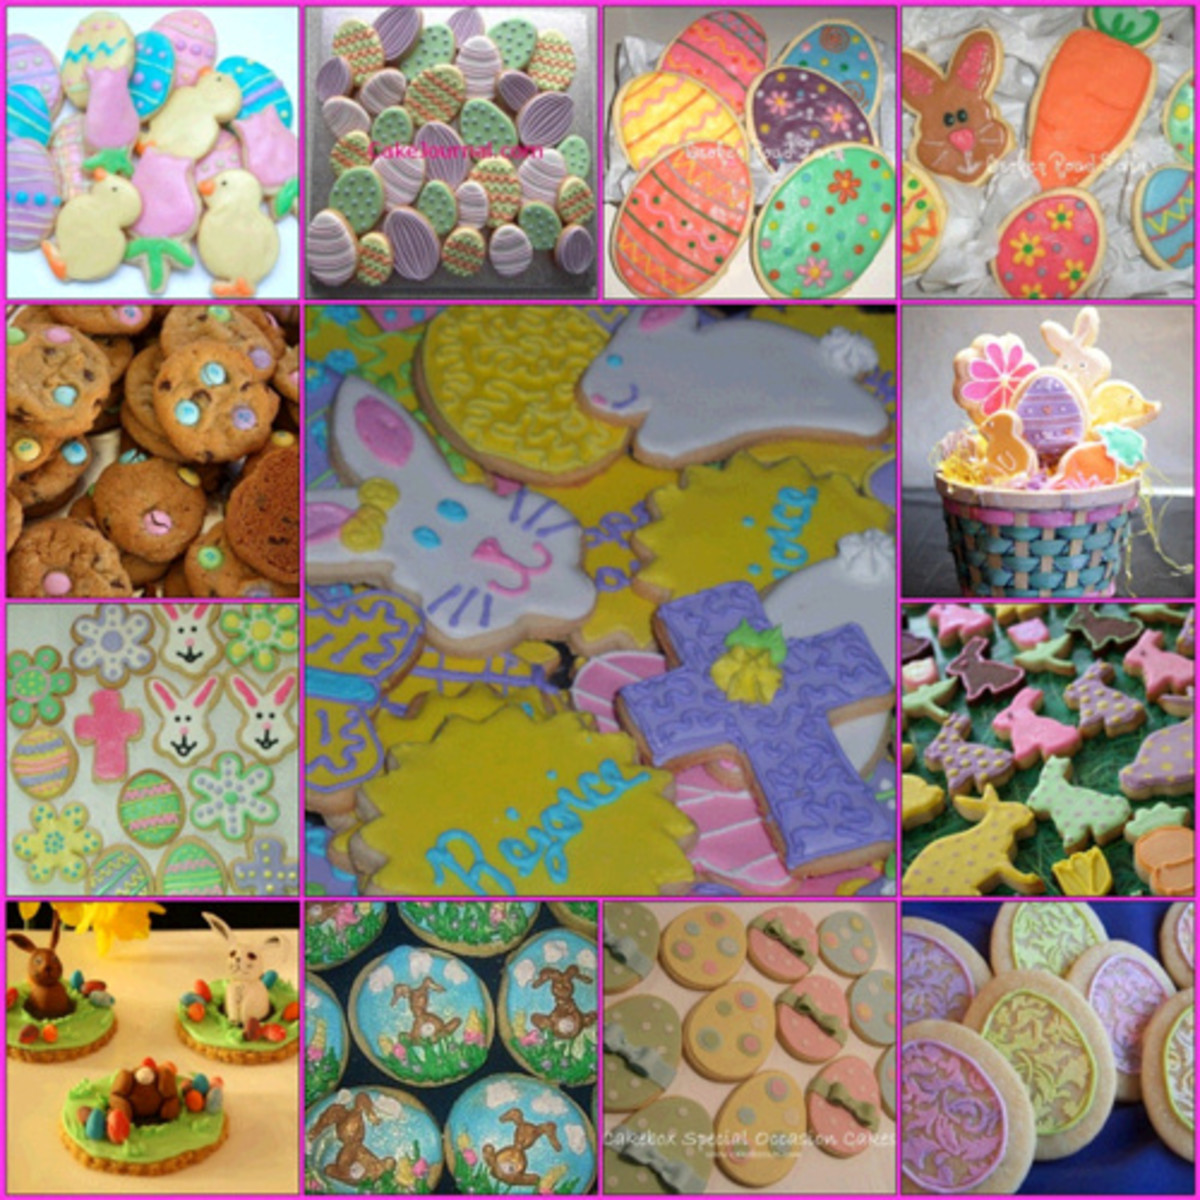 DessertLover2010's Easter Cookie Collage from Flickr